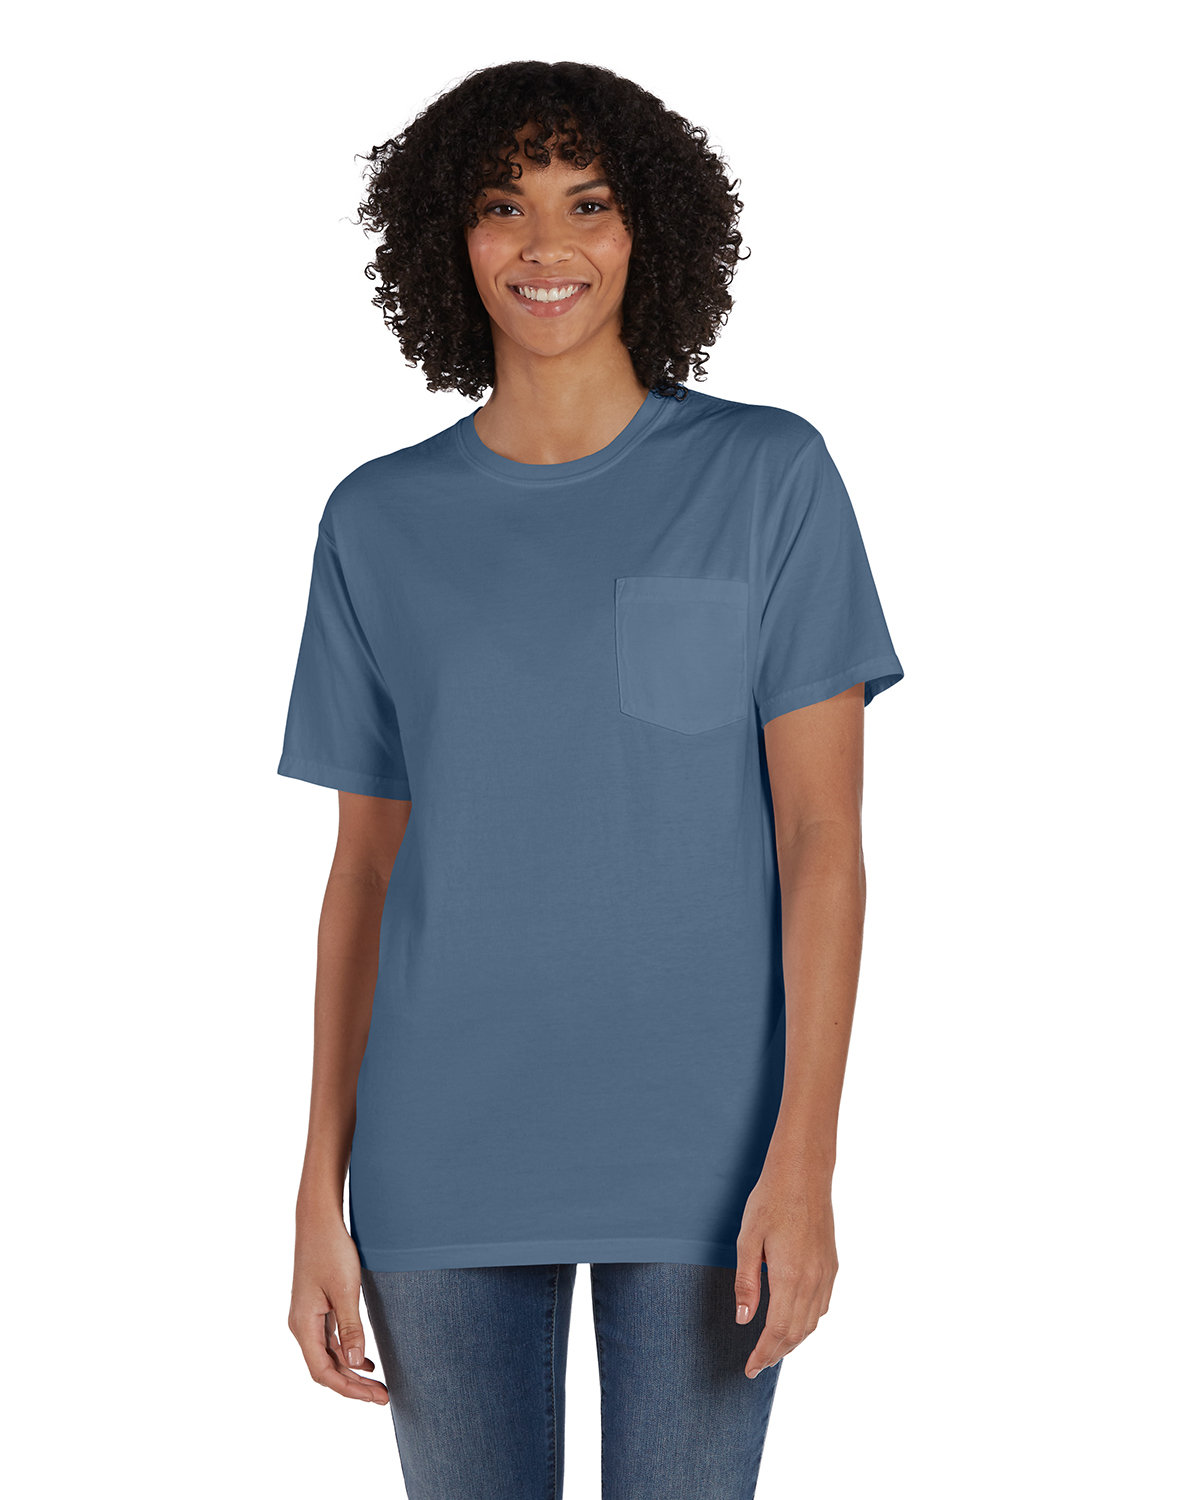 ComfortWash by Hanes Unisex 5.5 oz., 100% Ringspun Cotton Garment-Dyed T-Shirt with Pocket SALTWATER